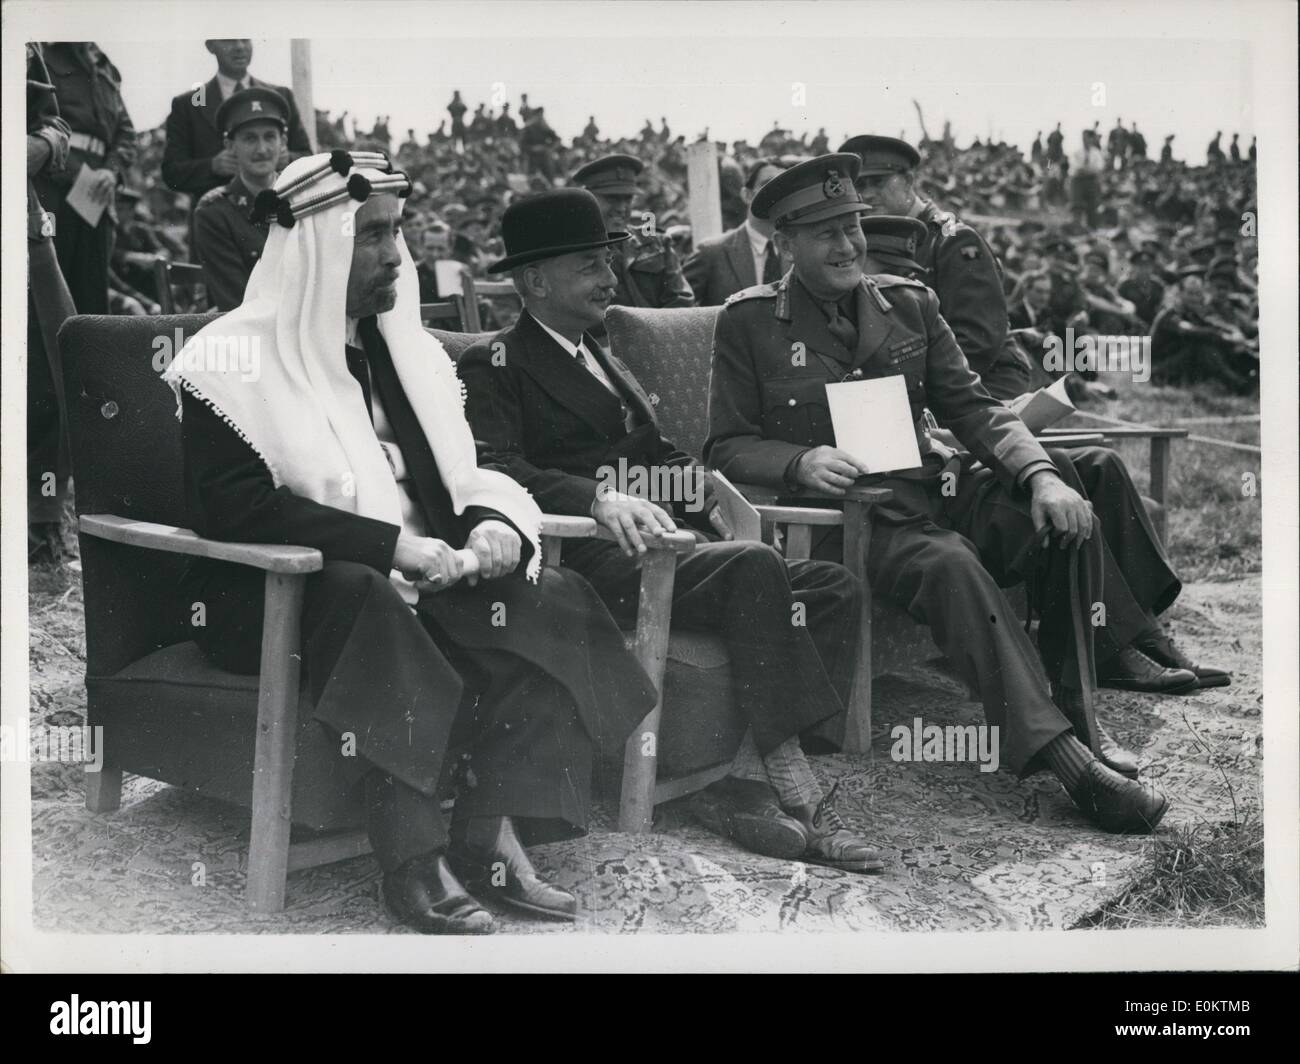 Jan 1, 1950 - King Abdullah And Colonel Glubb Pasha rdan Military Manouvres On Salisbury Plasi: King Abdullah of Trans Jo 49 Colonel Glubb Pasha Commancer of the Arab were among the dignitarisa watch the d ''(Illegible)'' ion or an ''attack'' on the village of Imber ''(Illegible)'' At plain. The ''attack'' for which lite ammunition ''(Illegible)'' is burry was organized by the School of Infantry at Wa ''(Illegible)'' used ''(Illegible)''. Photo shows Watching the manoeuvres afternoon - Left to Right:- King Abdullah; onle Glubb Pasha and General R.N - Stock Image